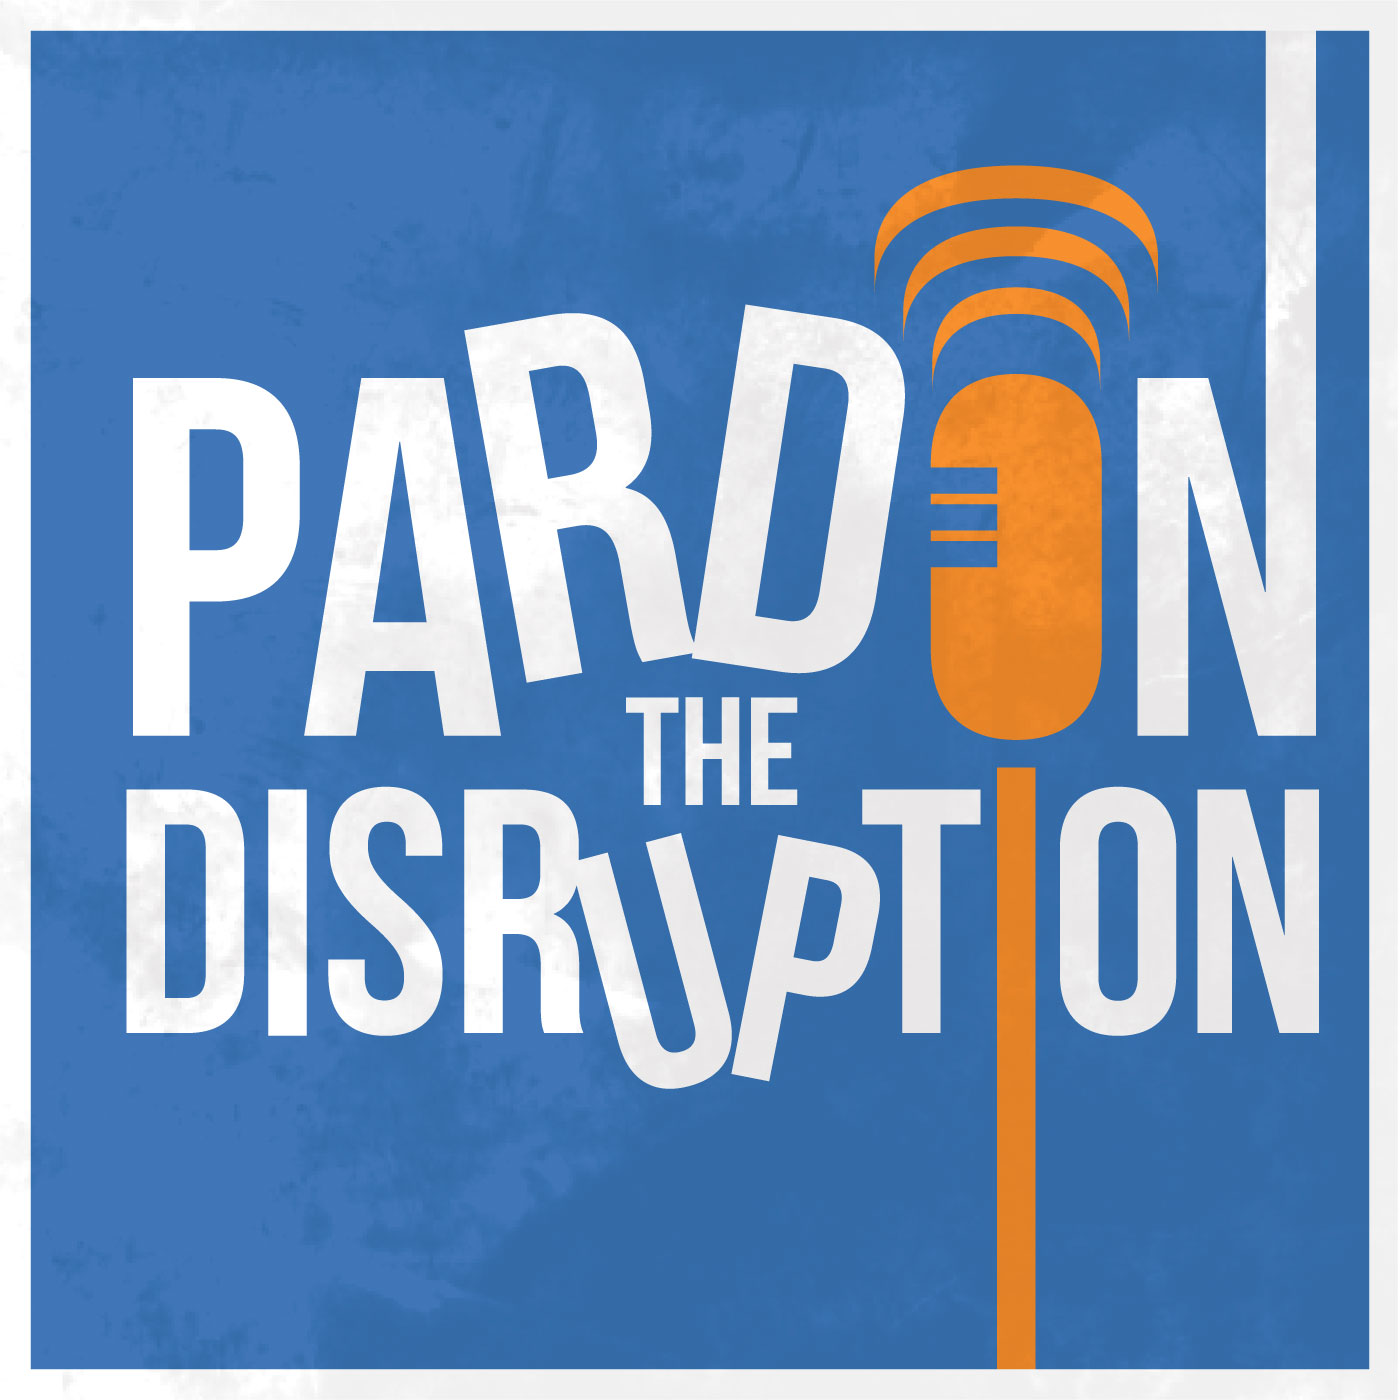 Pardon The Disruption; Disruption; Disruptive Innovation; Rumjog; Rumjog Enterprise